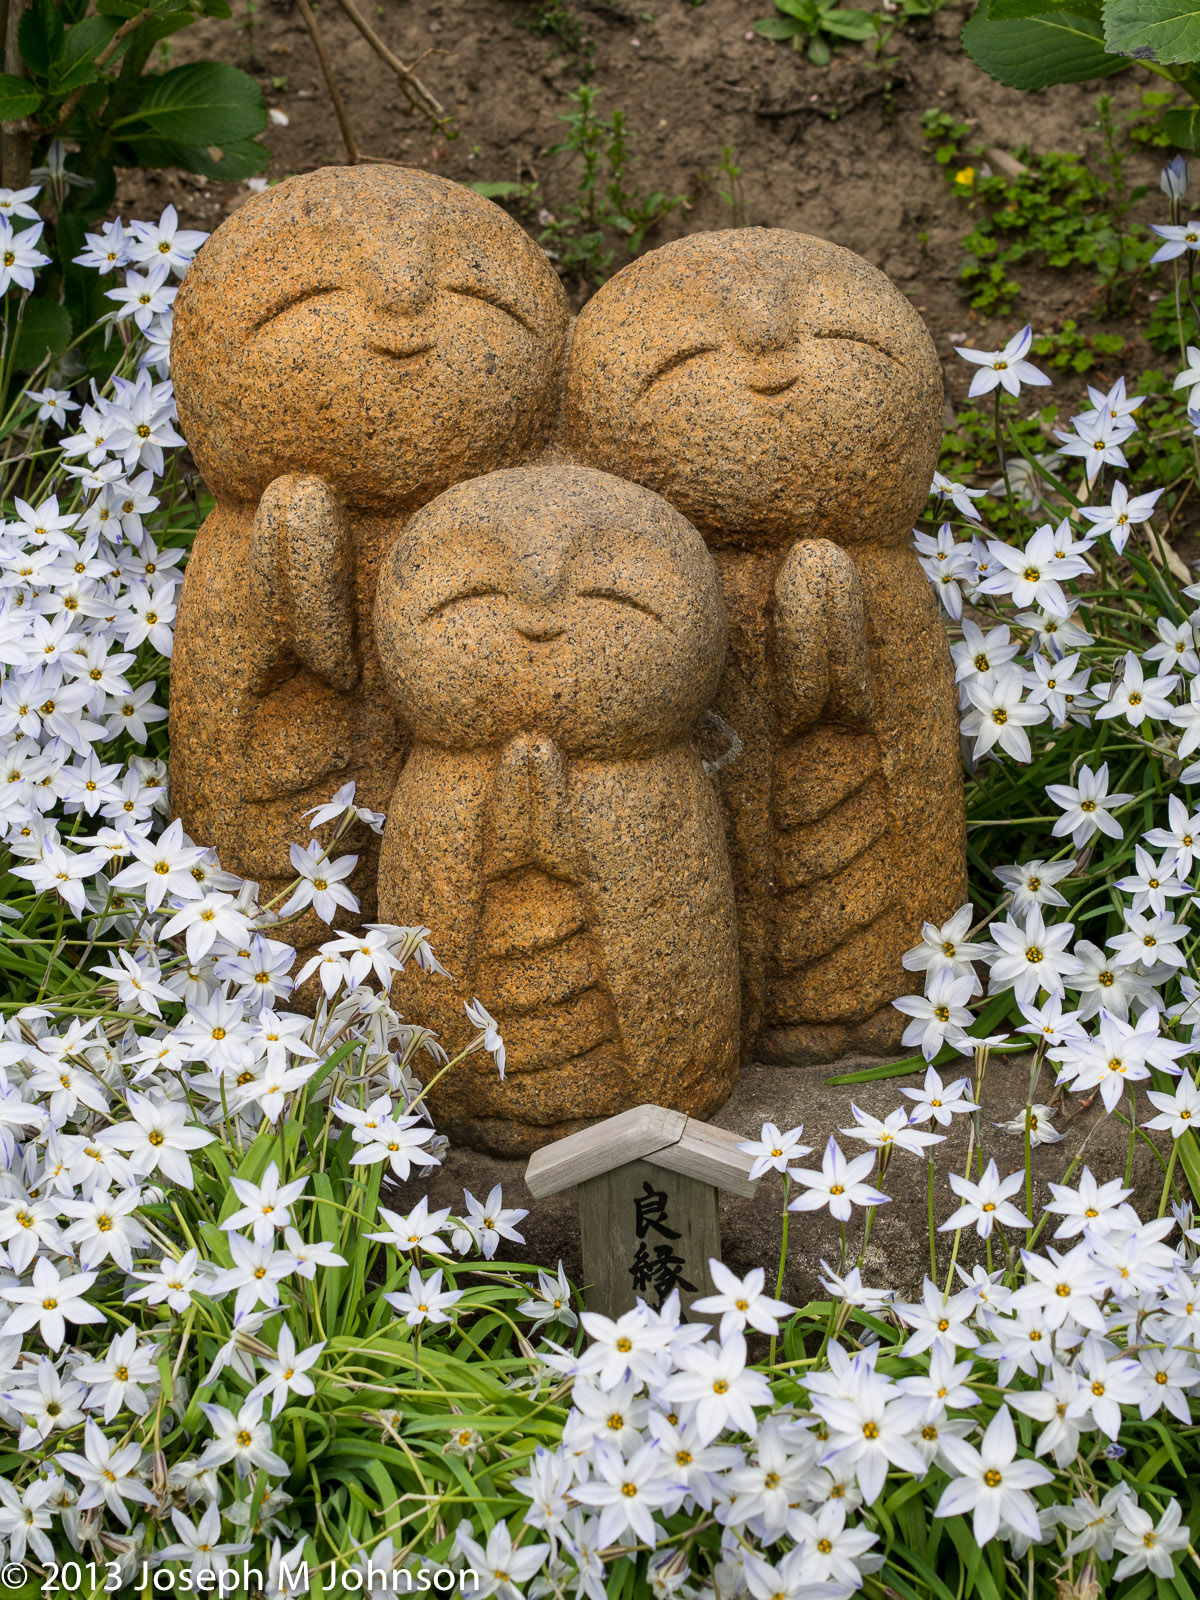 Cute statues cuddled in spring flowers